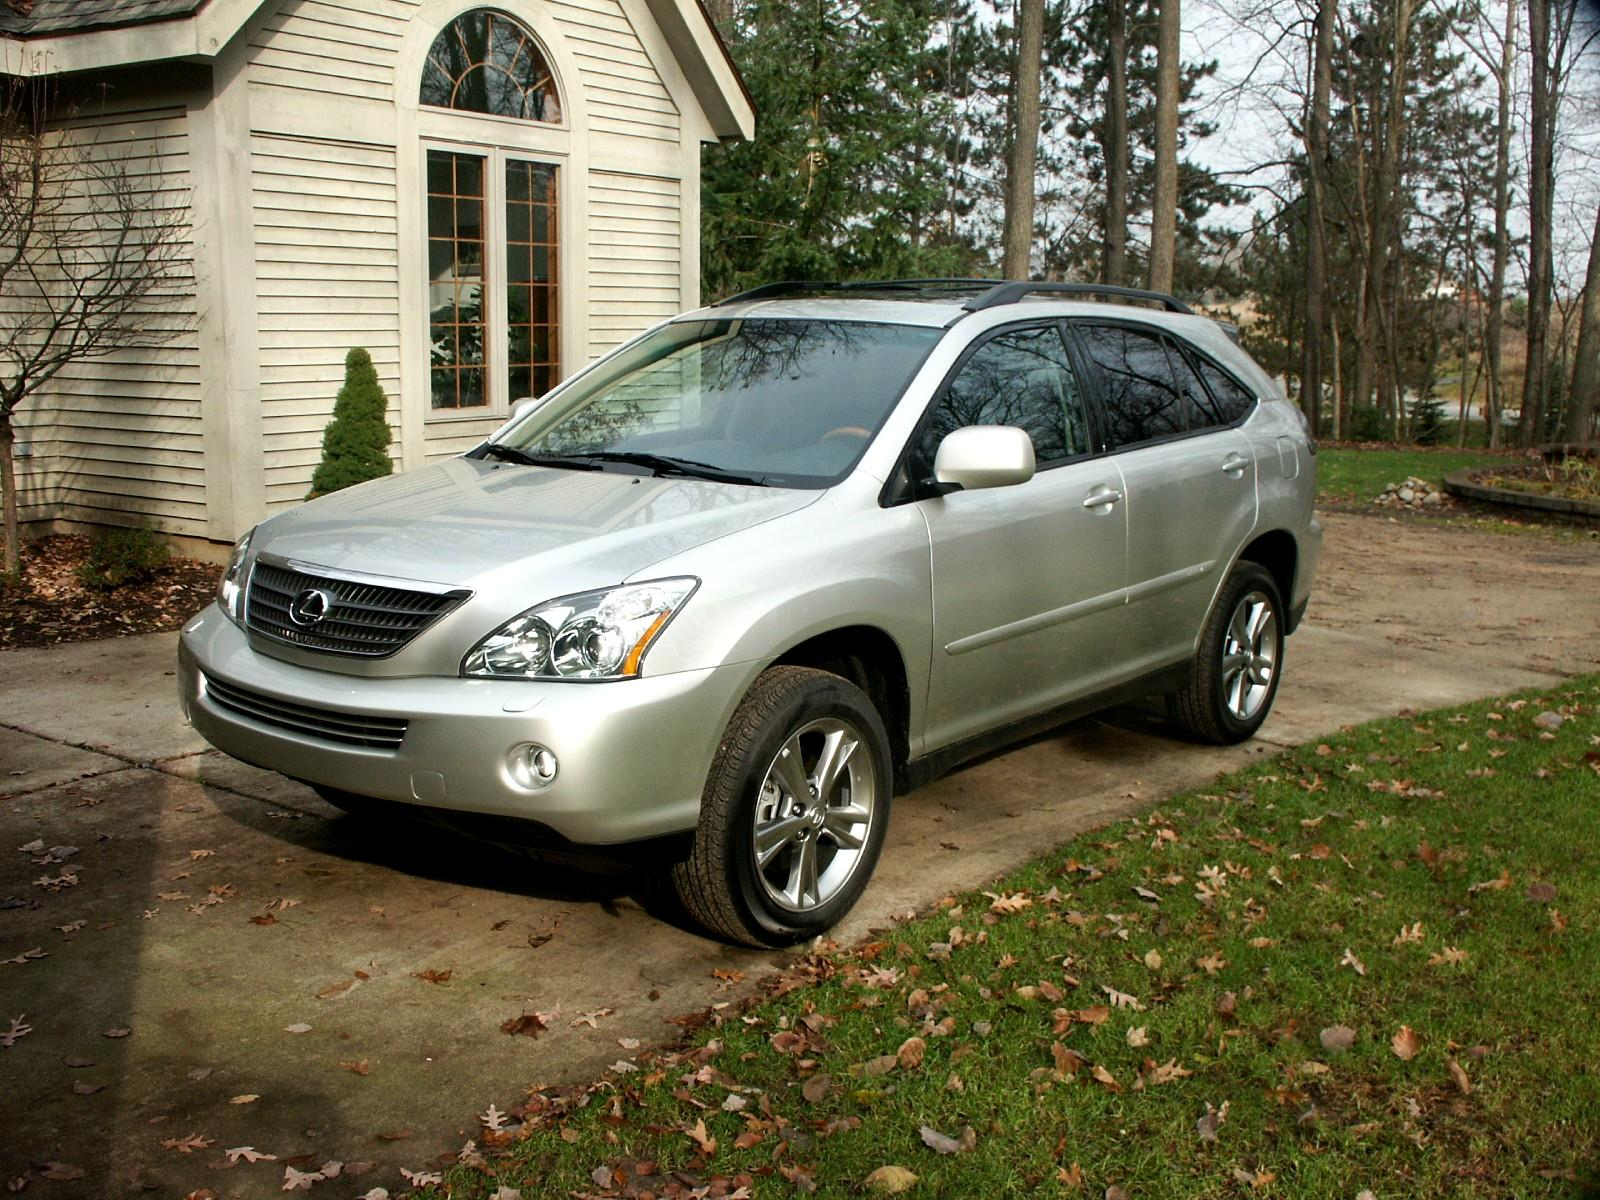 2007 Lexus 400h (select to view enlarged photo)